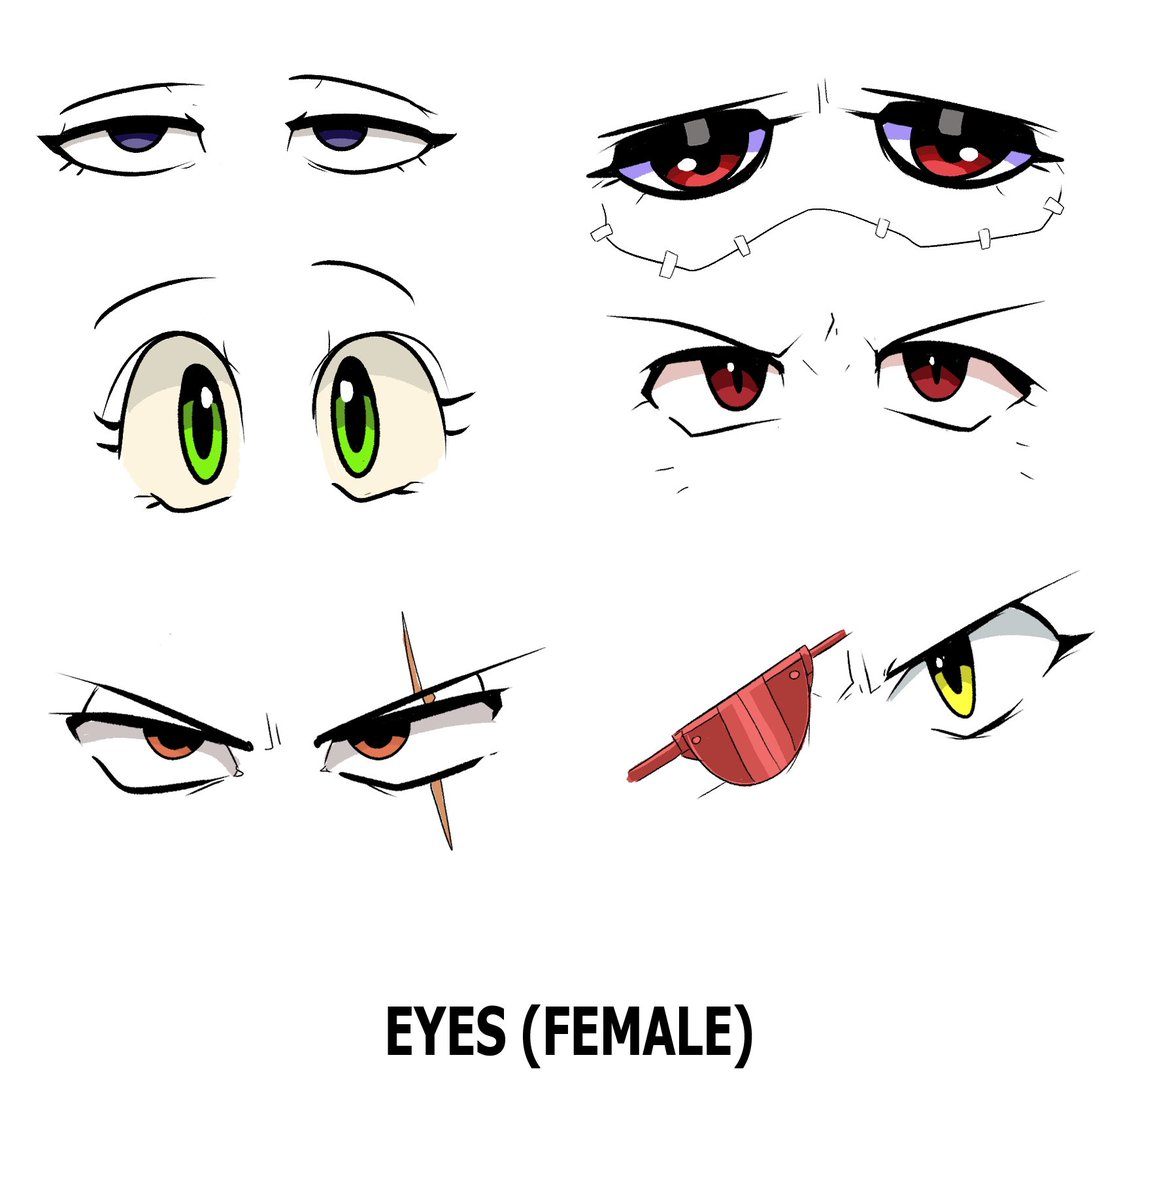 Also here's an eyes chart of all female OCs so far. https://t.co/At8weernZo